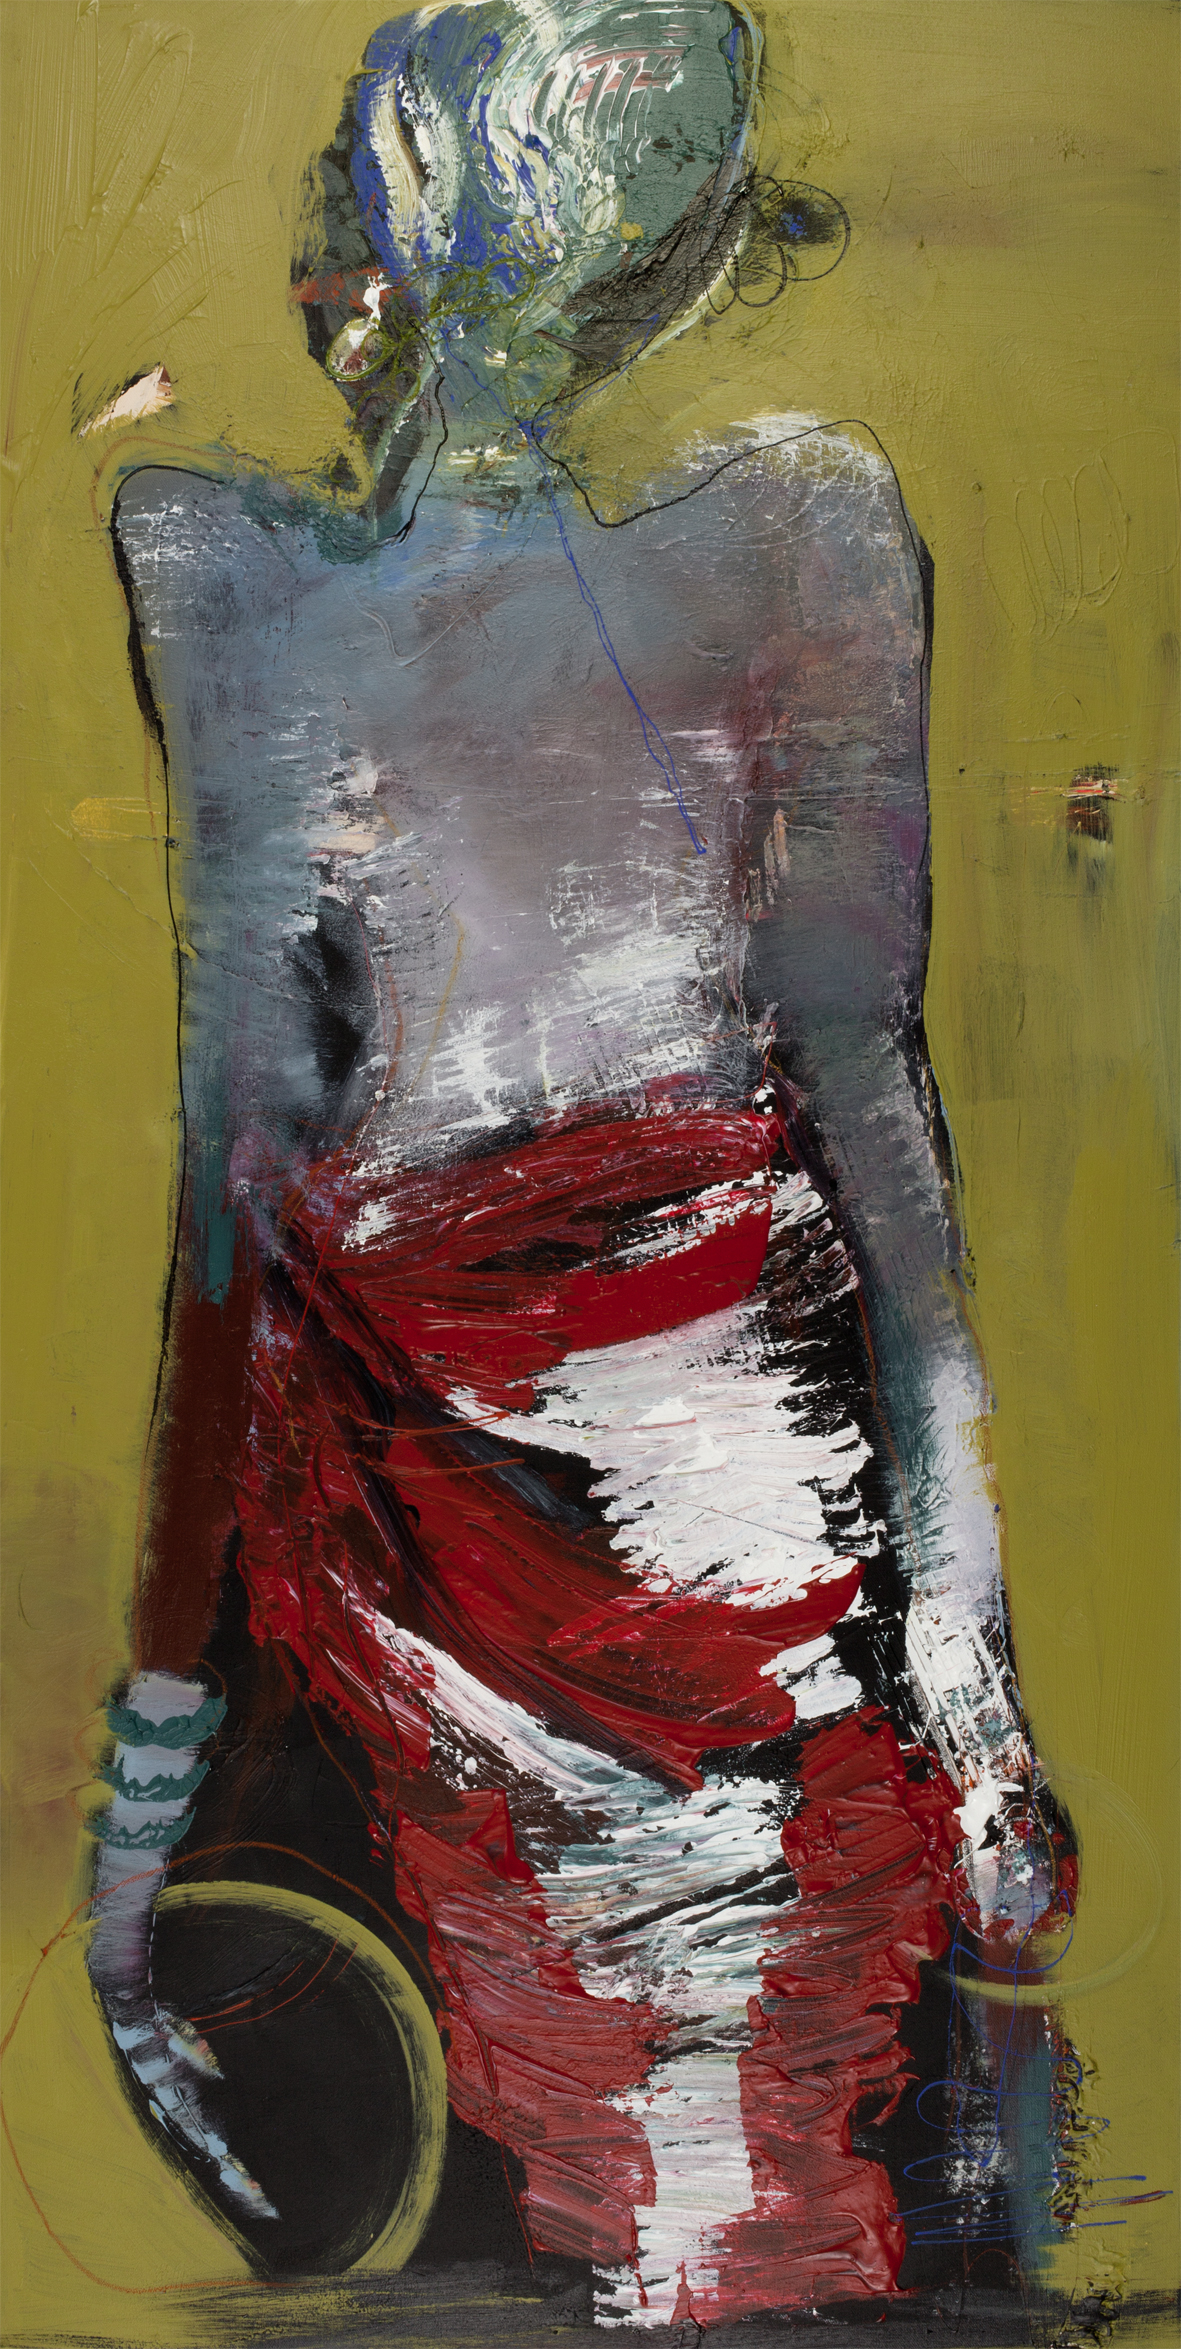 COUTURE 2 - Original Painting - size 70x140cm